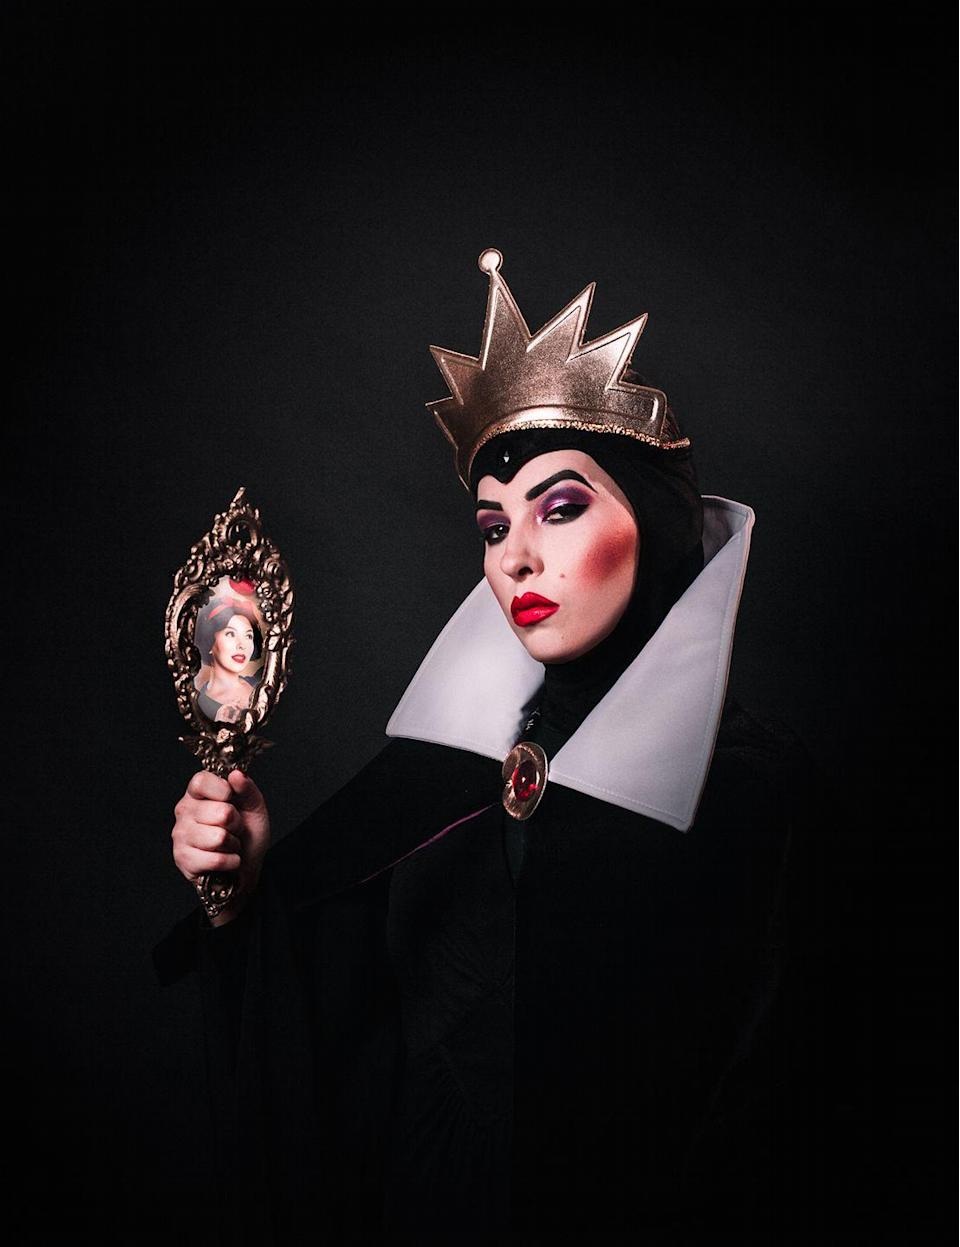 """<p>You can replicate this surprisingly simple costume with a black cape topped by a tall, white collar, a golden crown, and dramatic red lips. For extra points, line a hand mirror with a pic of Snow White to show who really is the fairest of them all.</p><p><strong>Get the tutorial at <a href=""""https://keikolynn.com/2019/10/disney-villains-halloween-costumes/"""" rel=""""nofollow noopener"""" target=""""_blank"""" data-ylk=""""slk:Keiko Lynn"""" class=""""link rapid-noclick-resp"""">Keiko Lynn</a>.</strong></p><p><a class=""""link rapid-noclick-resp"""" href=""""https://www.amazon.com/Red-Lipstick/s?k=Red+Lipstick&tag=syn-yahoo-20&ascsubtag=%5Bartid%7C10050.g.36674692%5Bsrc%7Cyahoo-us"""" rel=""""nofollow noopener"""" target=""""_blank"""" data-ylk=""""slk:SHOP RED LIPSTICK"""">SHOP RED LIPSTICK</a><br></p>"""